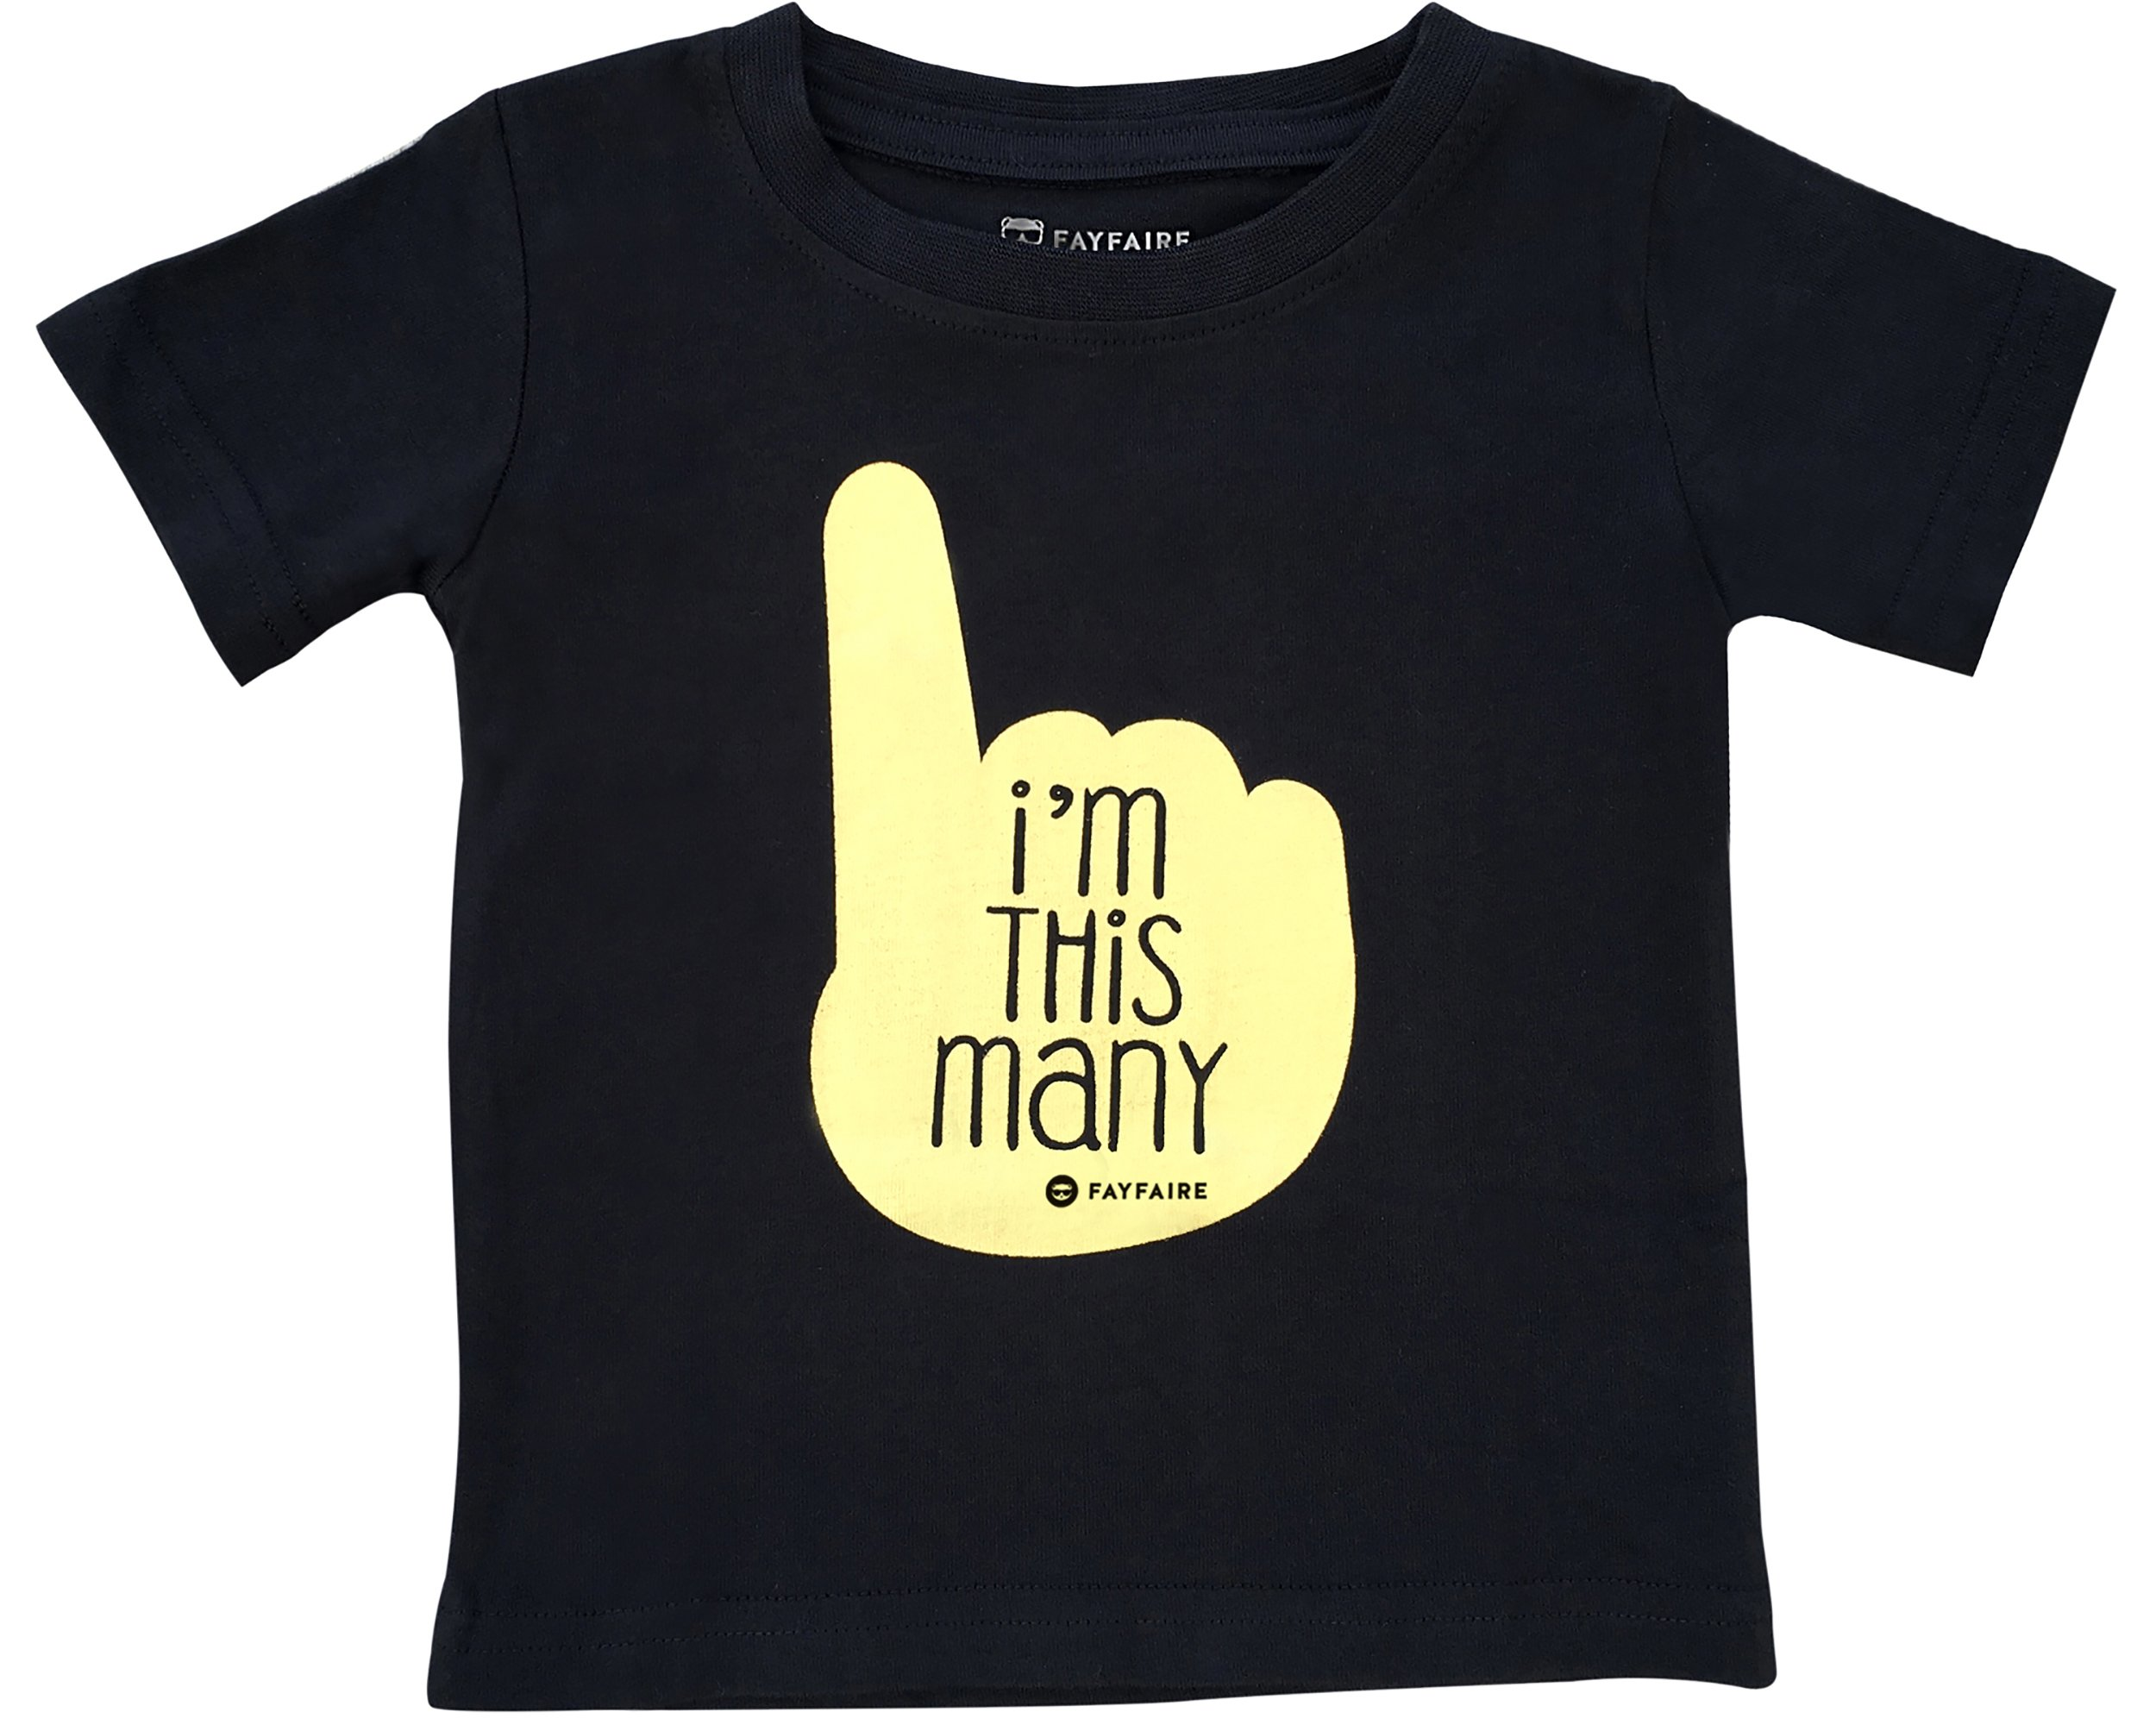 Fayfaire First Birthday Shirt Outfit: Boutique Quality 1st Bday I'm This Many 18M